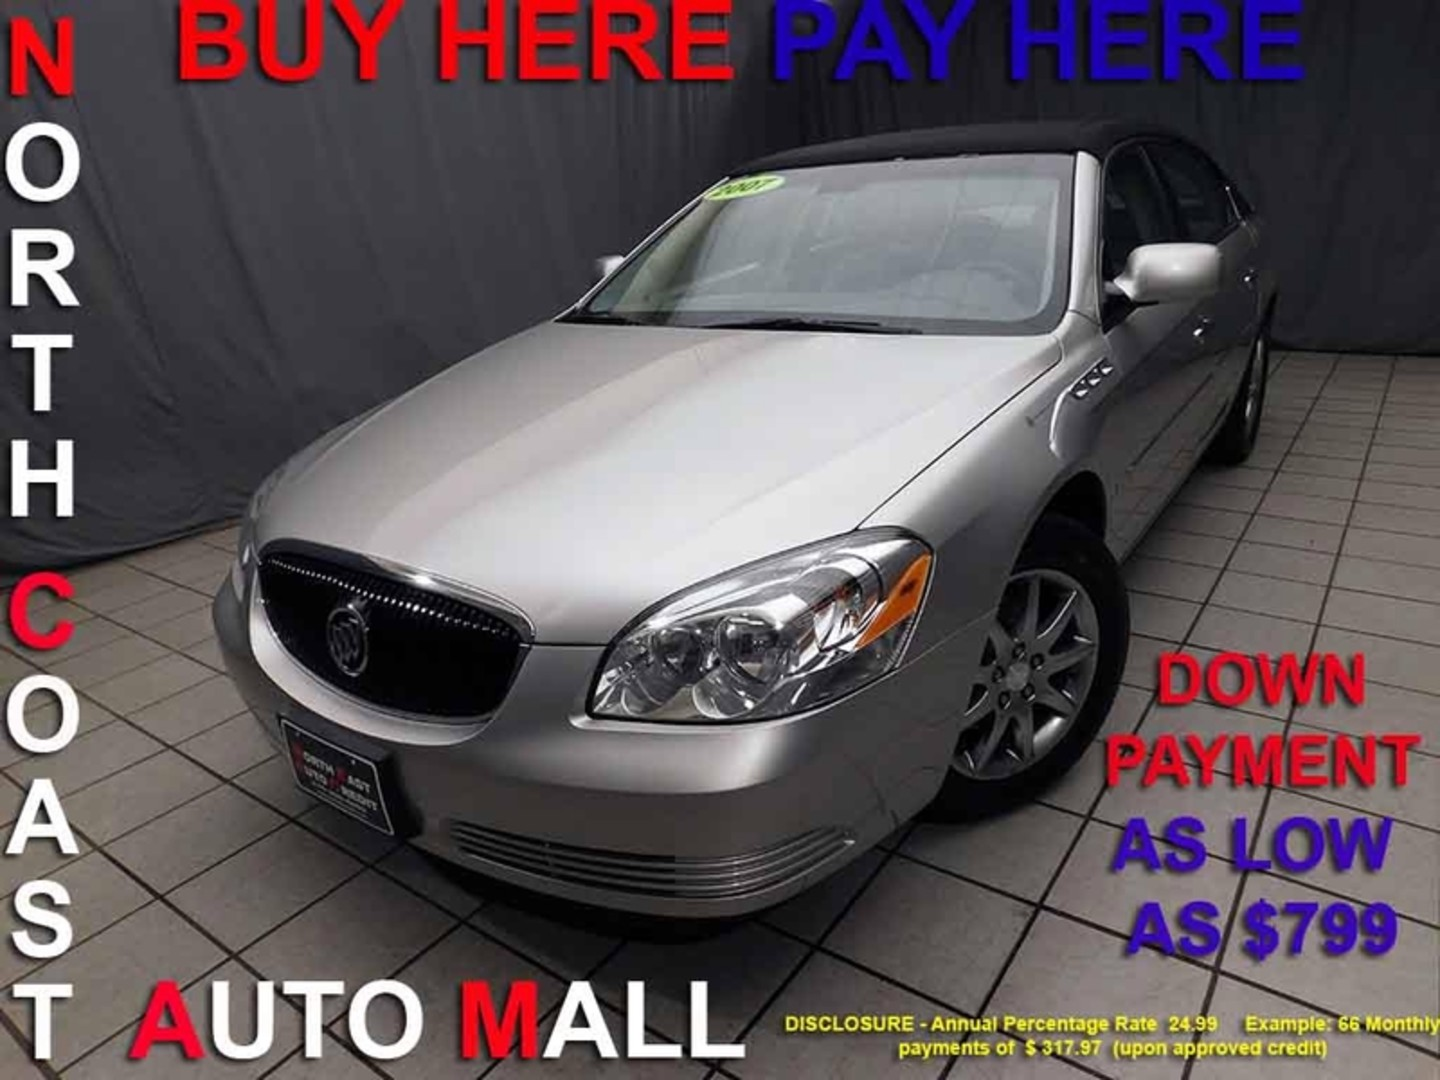 2007 buick lucerne v6 cxl as low as 799 down city ohio north coast auto mall of cleveland. Black Bedroom Furniture Sets. Home Design Ideas